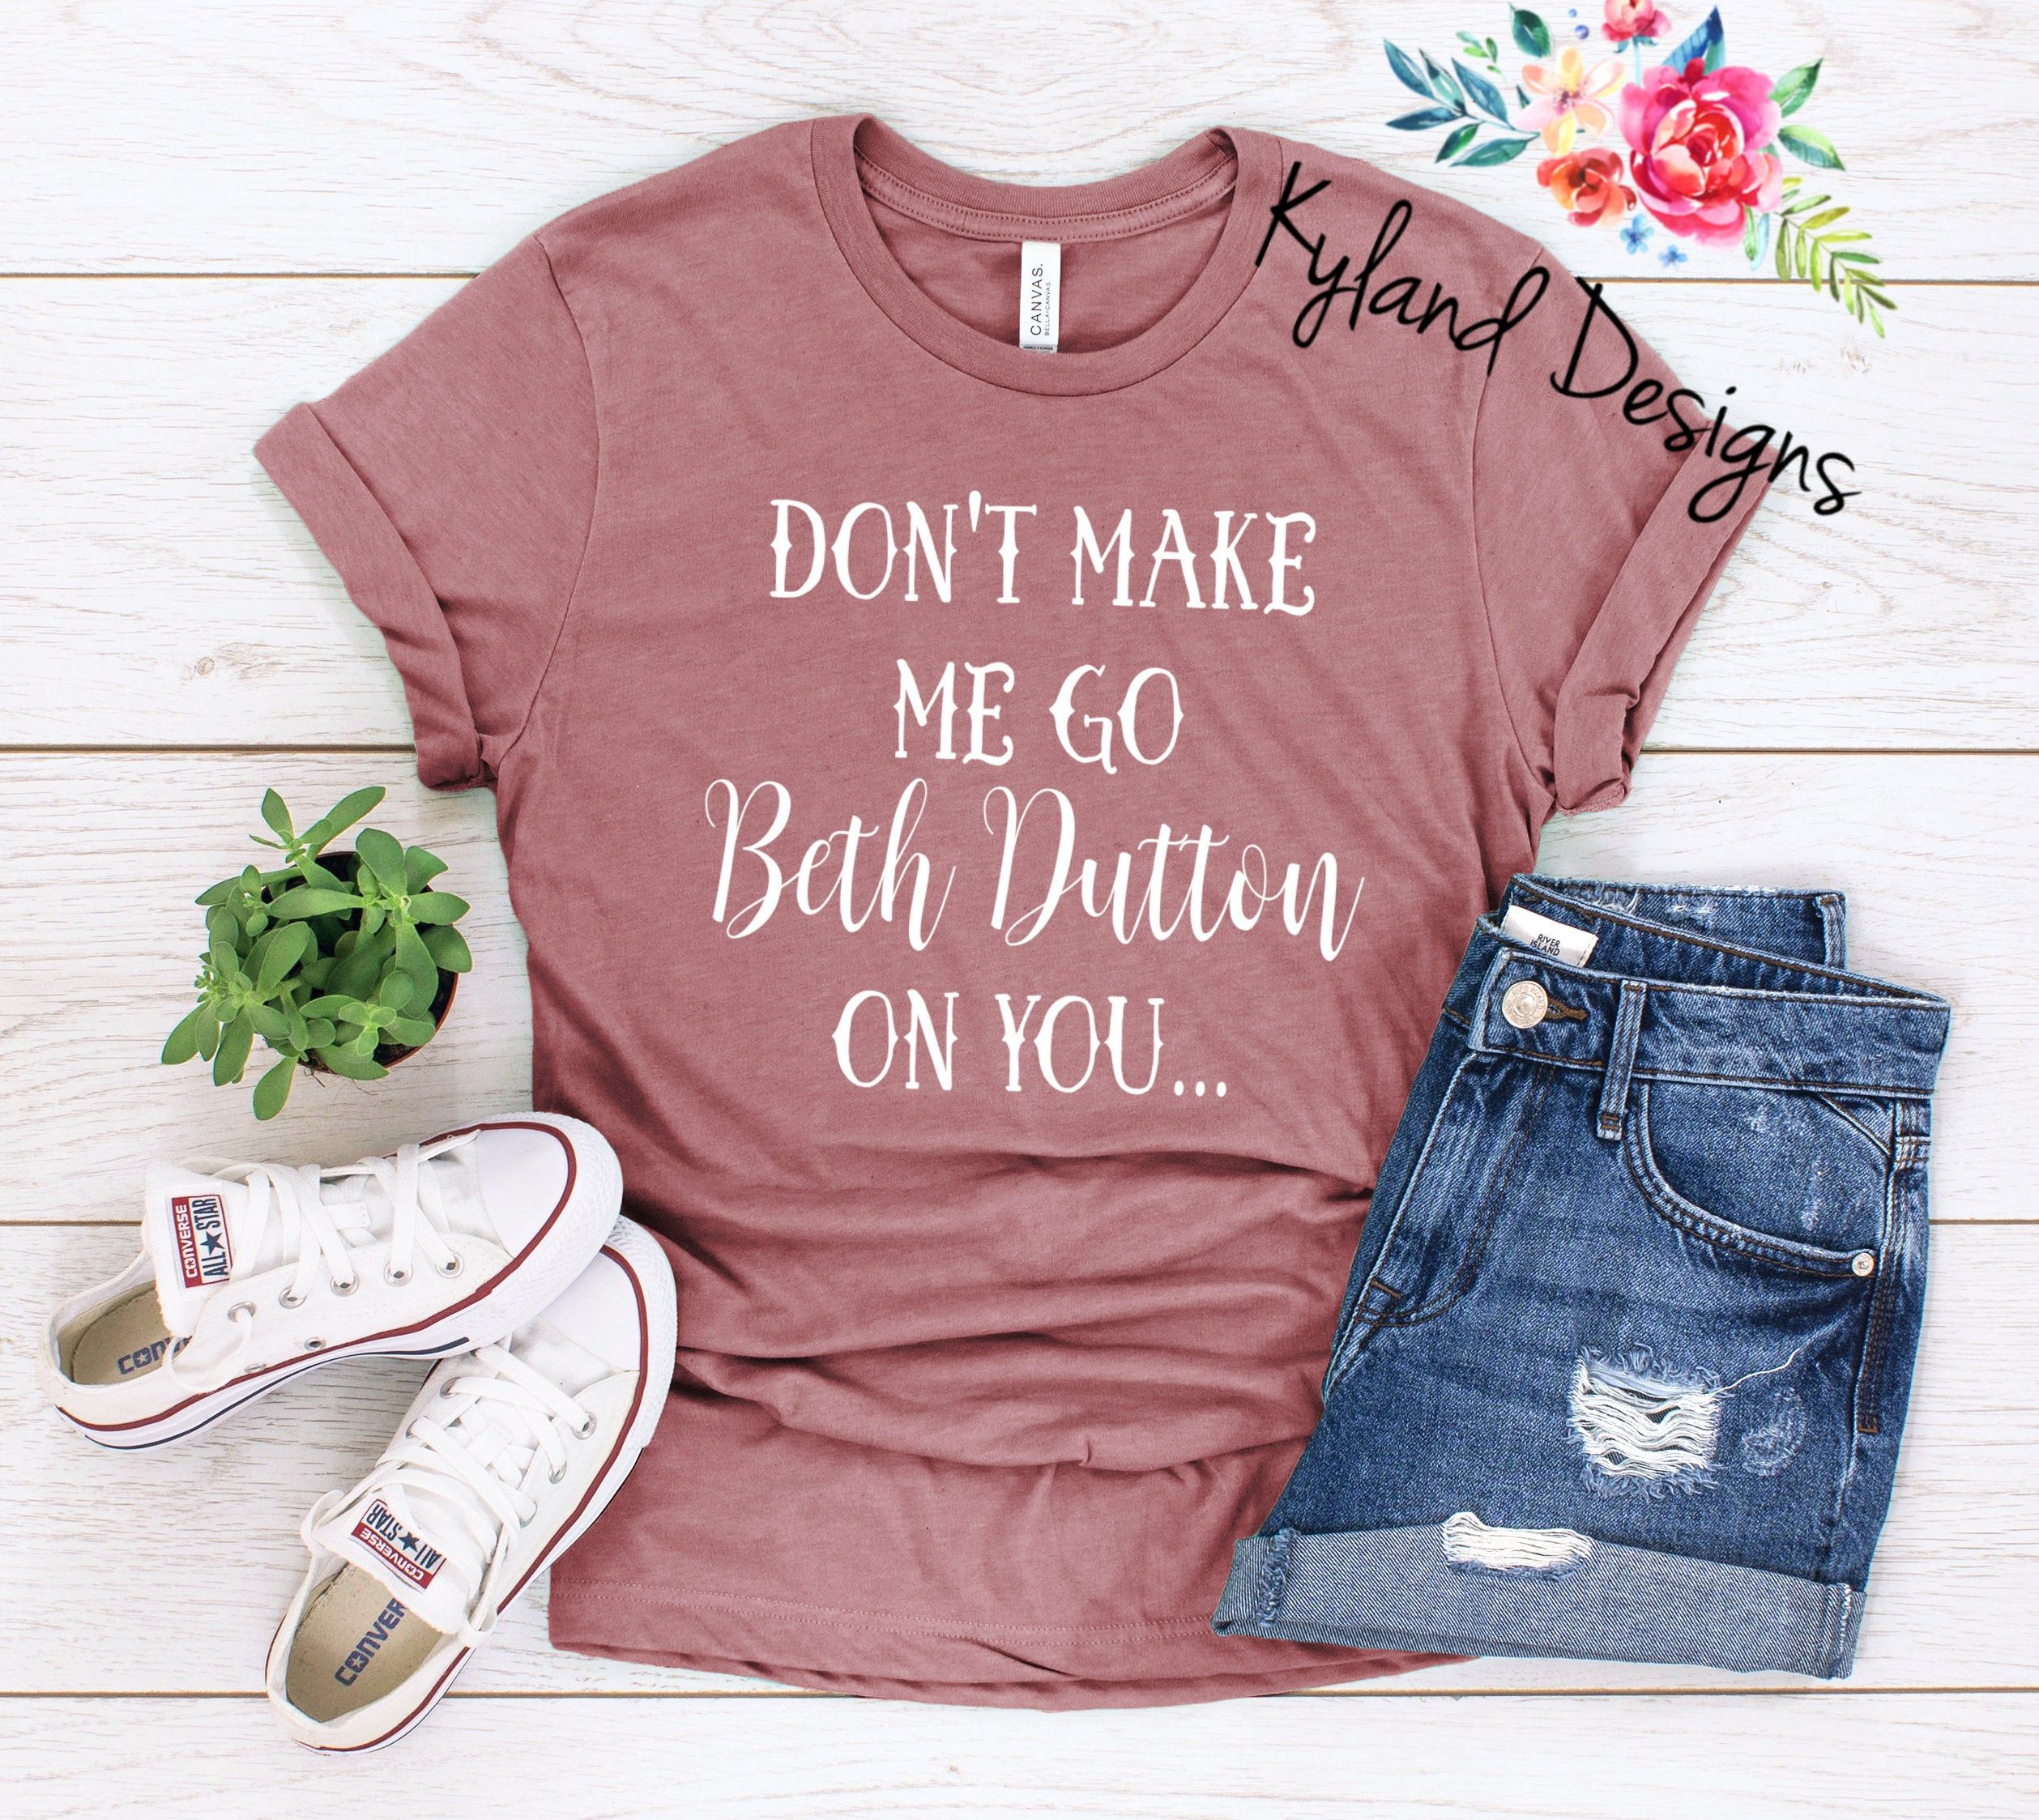 Don't Make Me Go Beth Dutton On You, Women's Graphic Tee